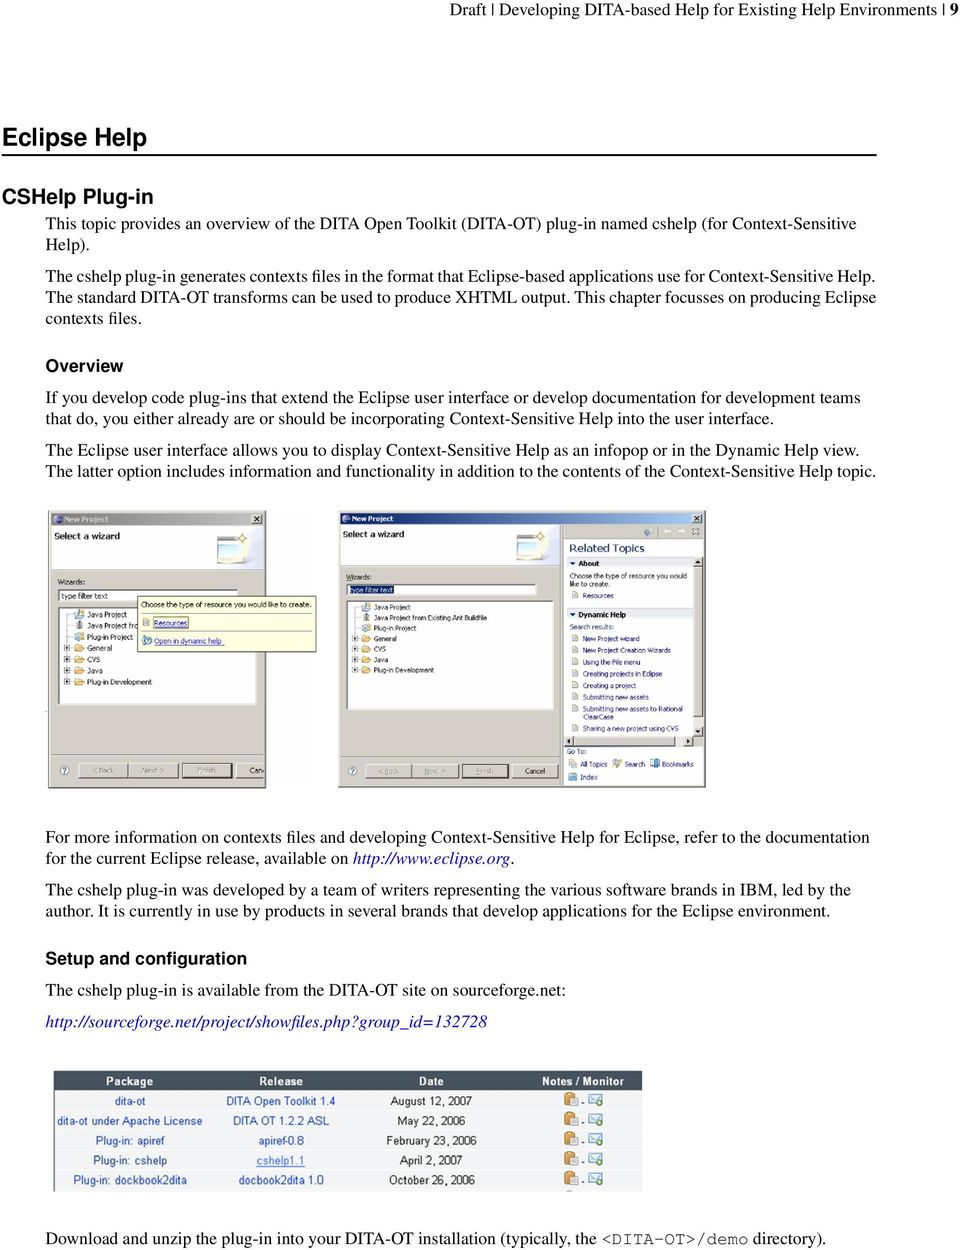 7f4b60a6699 The standard DITA-OT transforms can be used to produce XHTML output. This  chapter